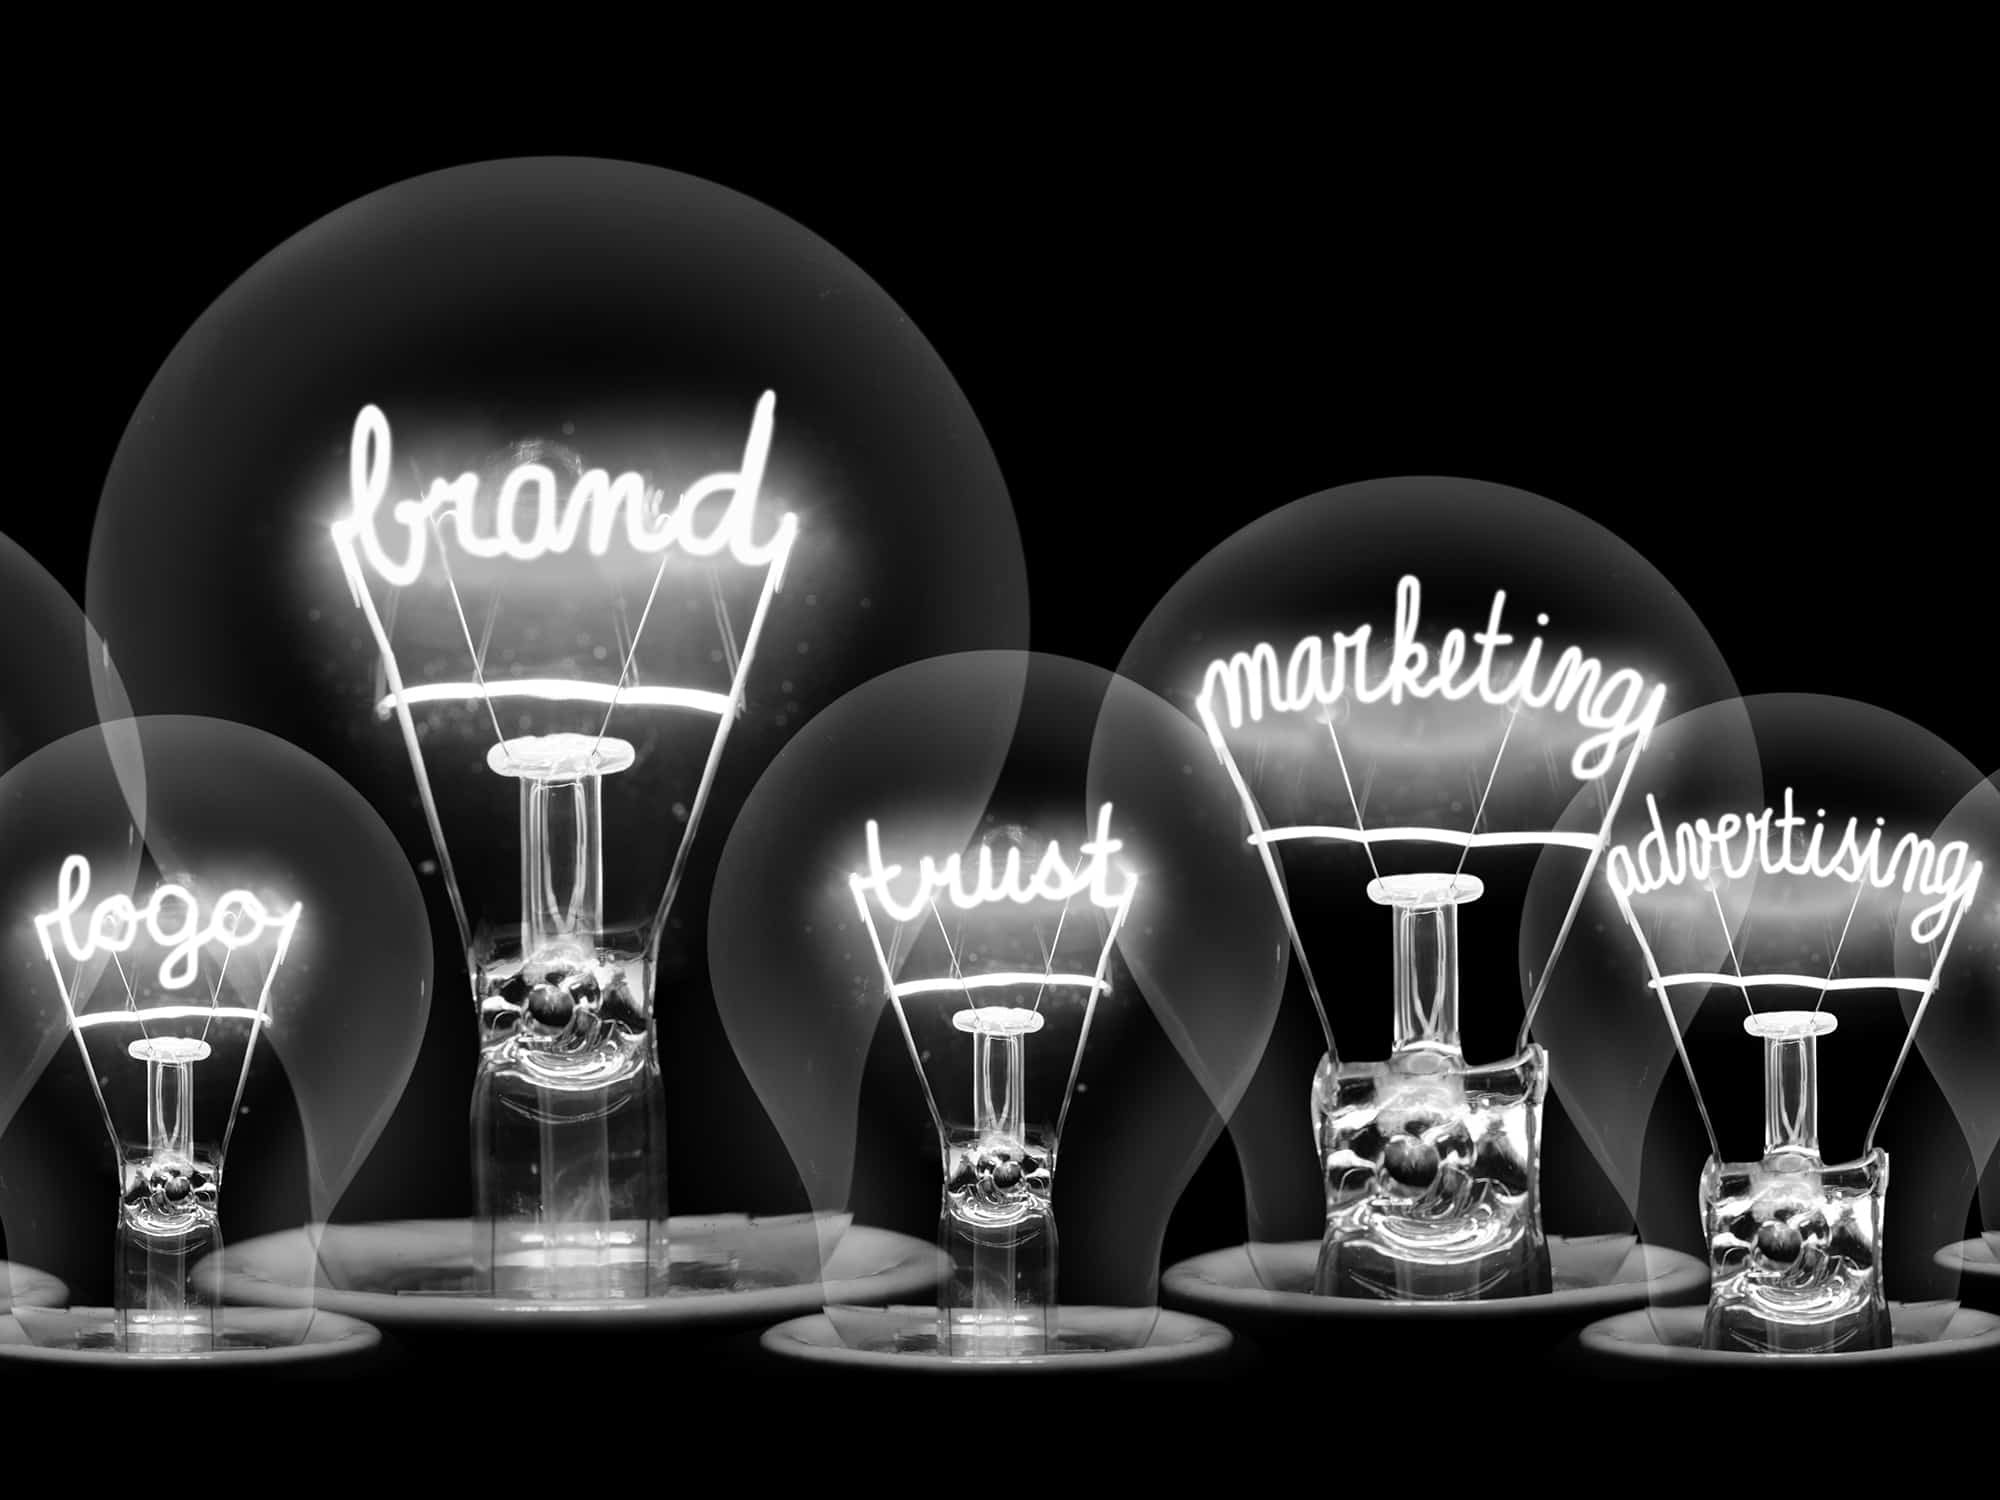 light bulbs containing marketing words in the filaments B&W